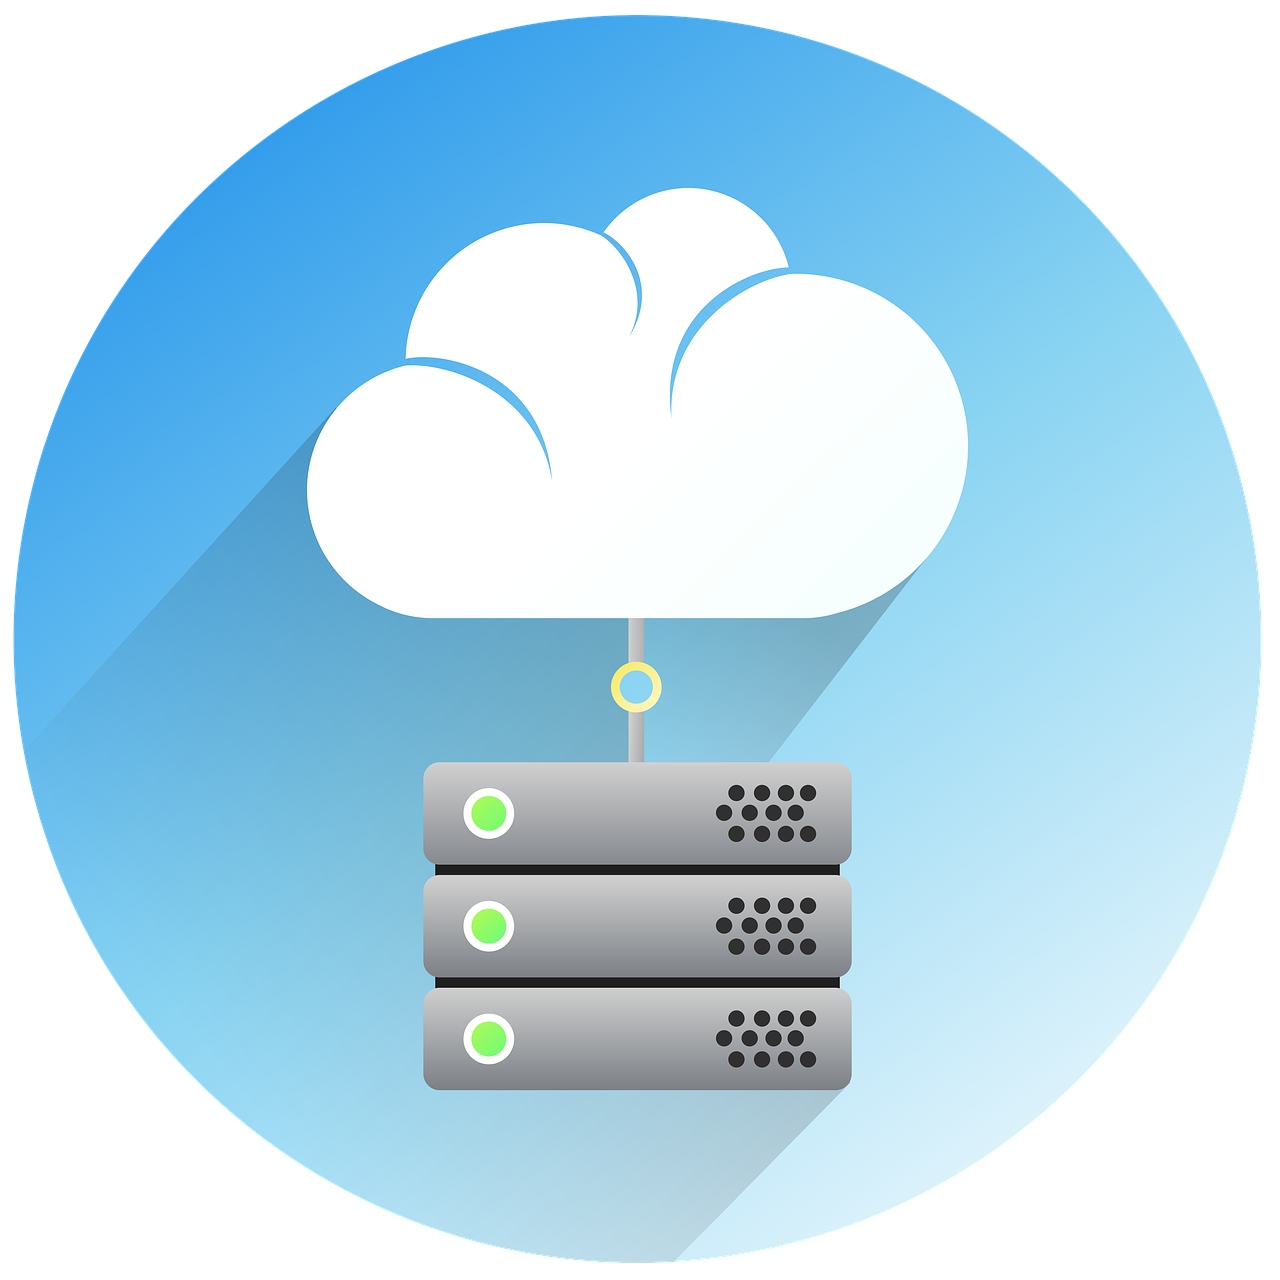 server, cloud, design